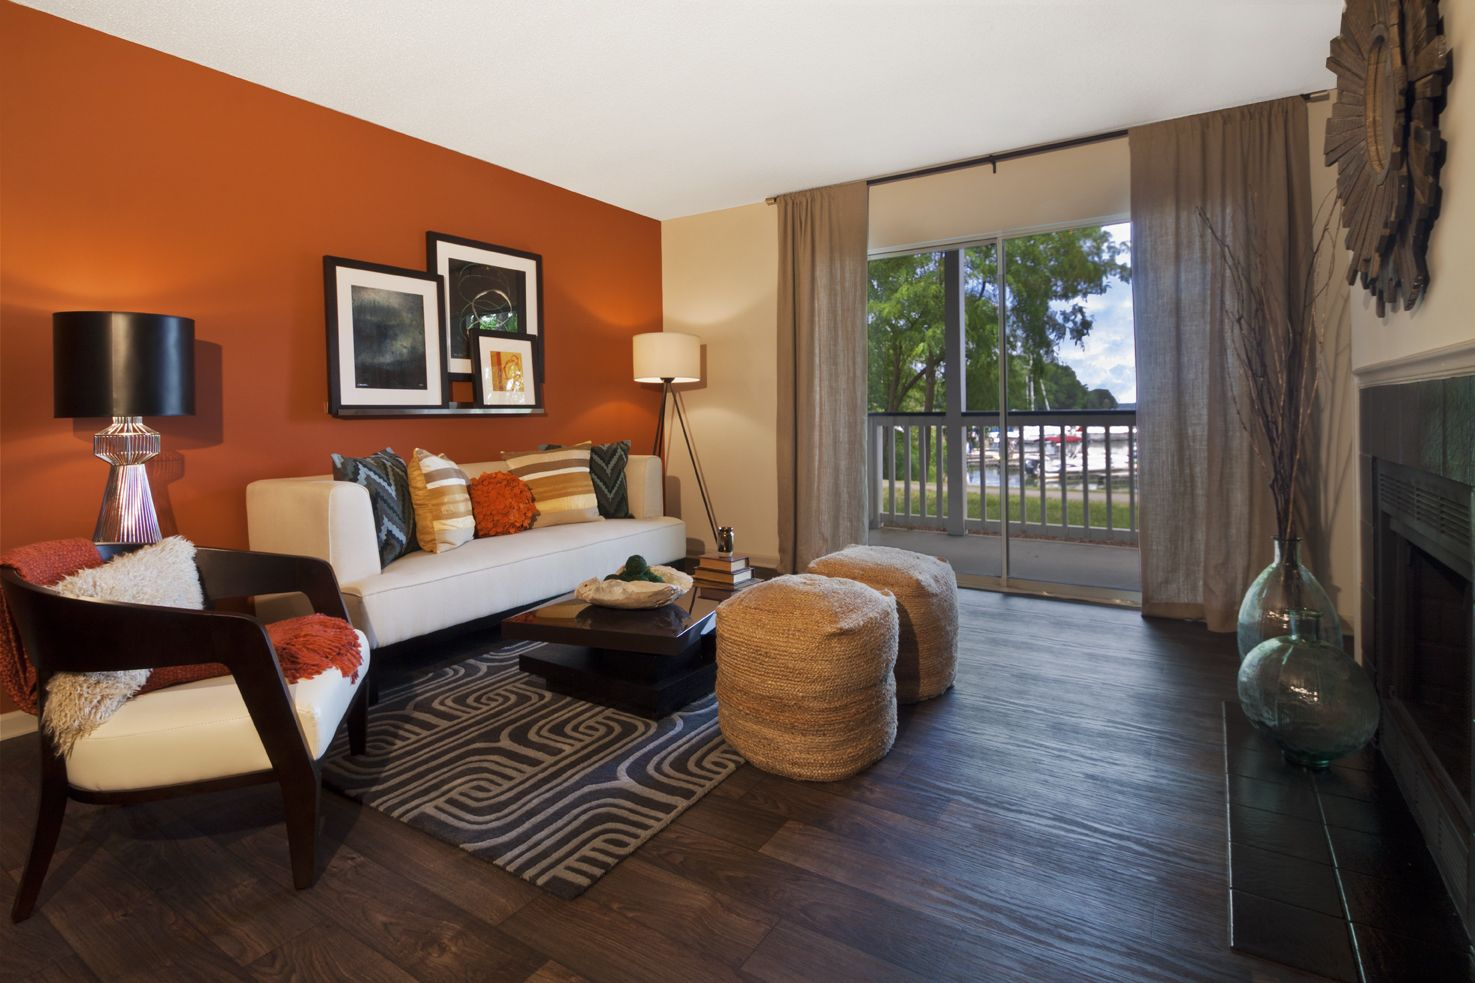 Marina Shores Waterfront Apartments Accent Walls In Living Room Living Room Orange Orange Accent Wall Living Room